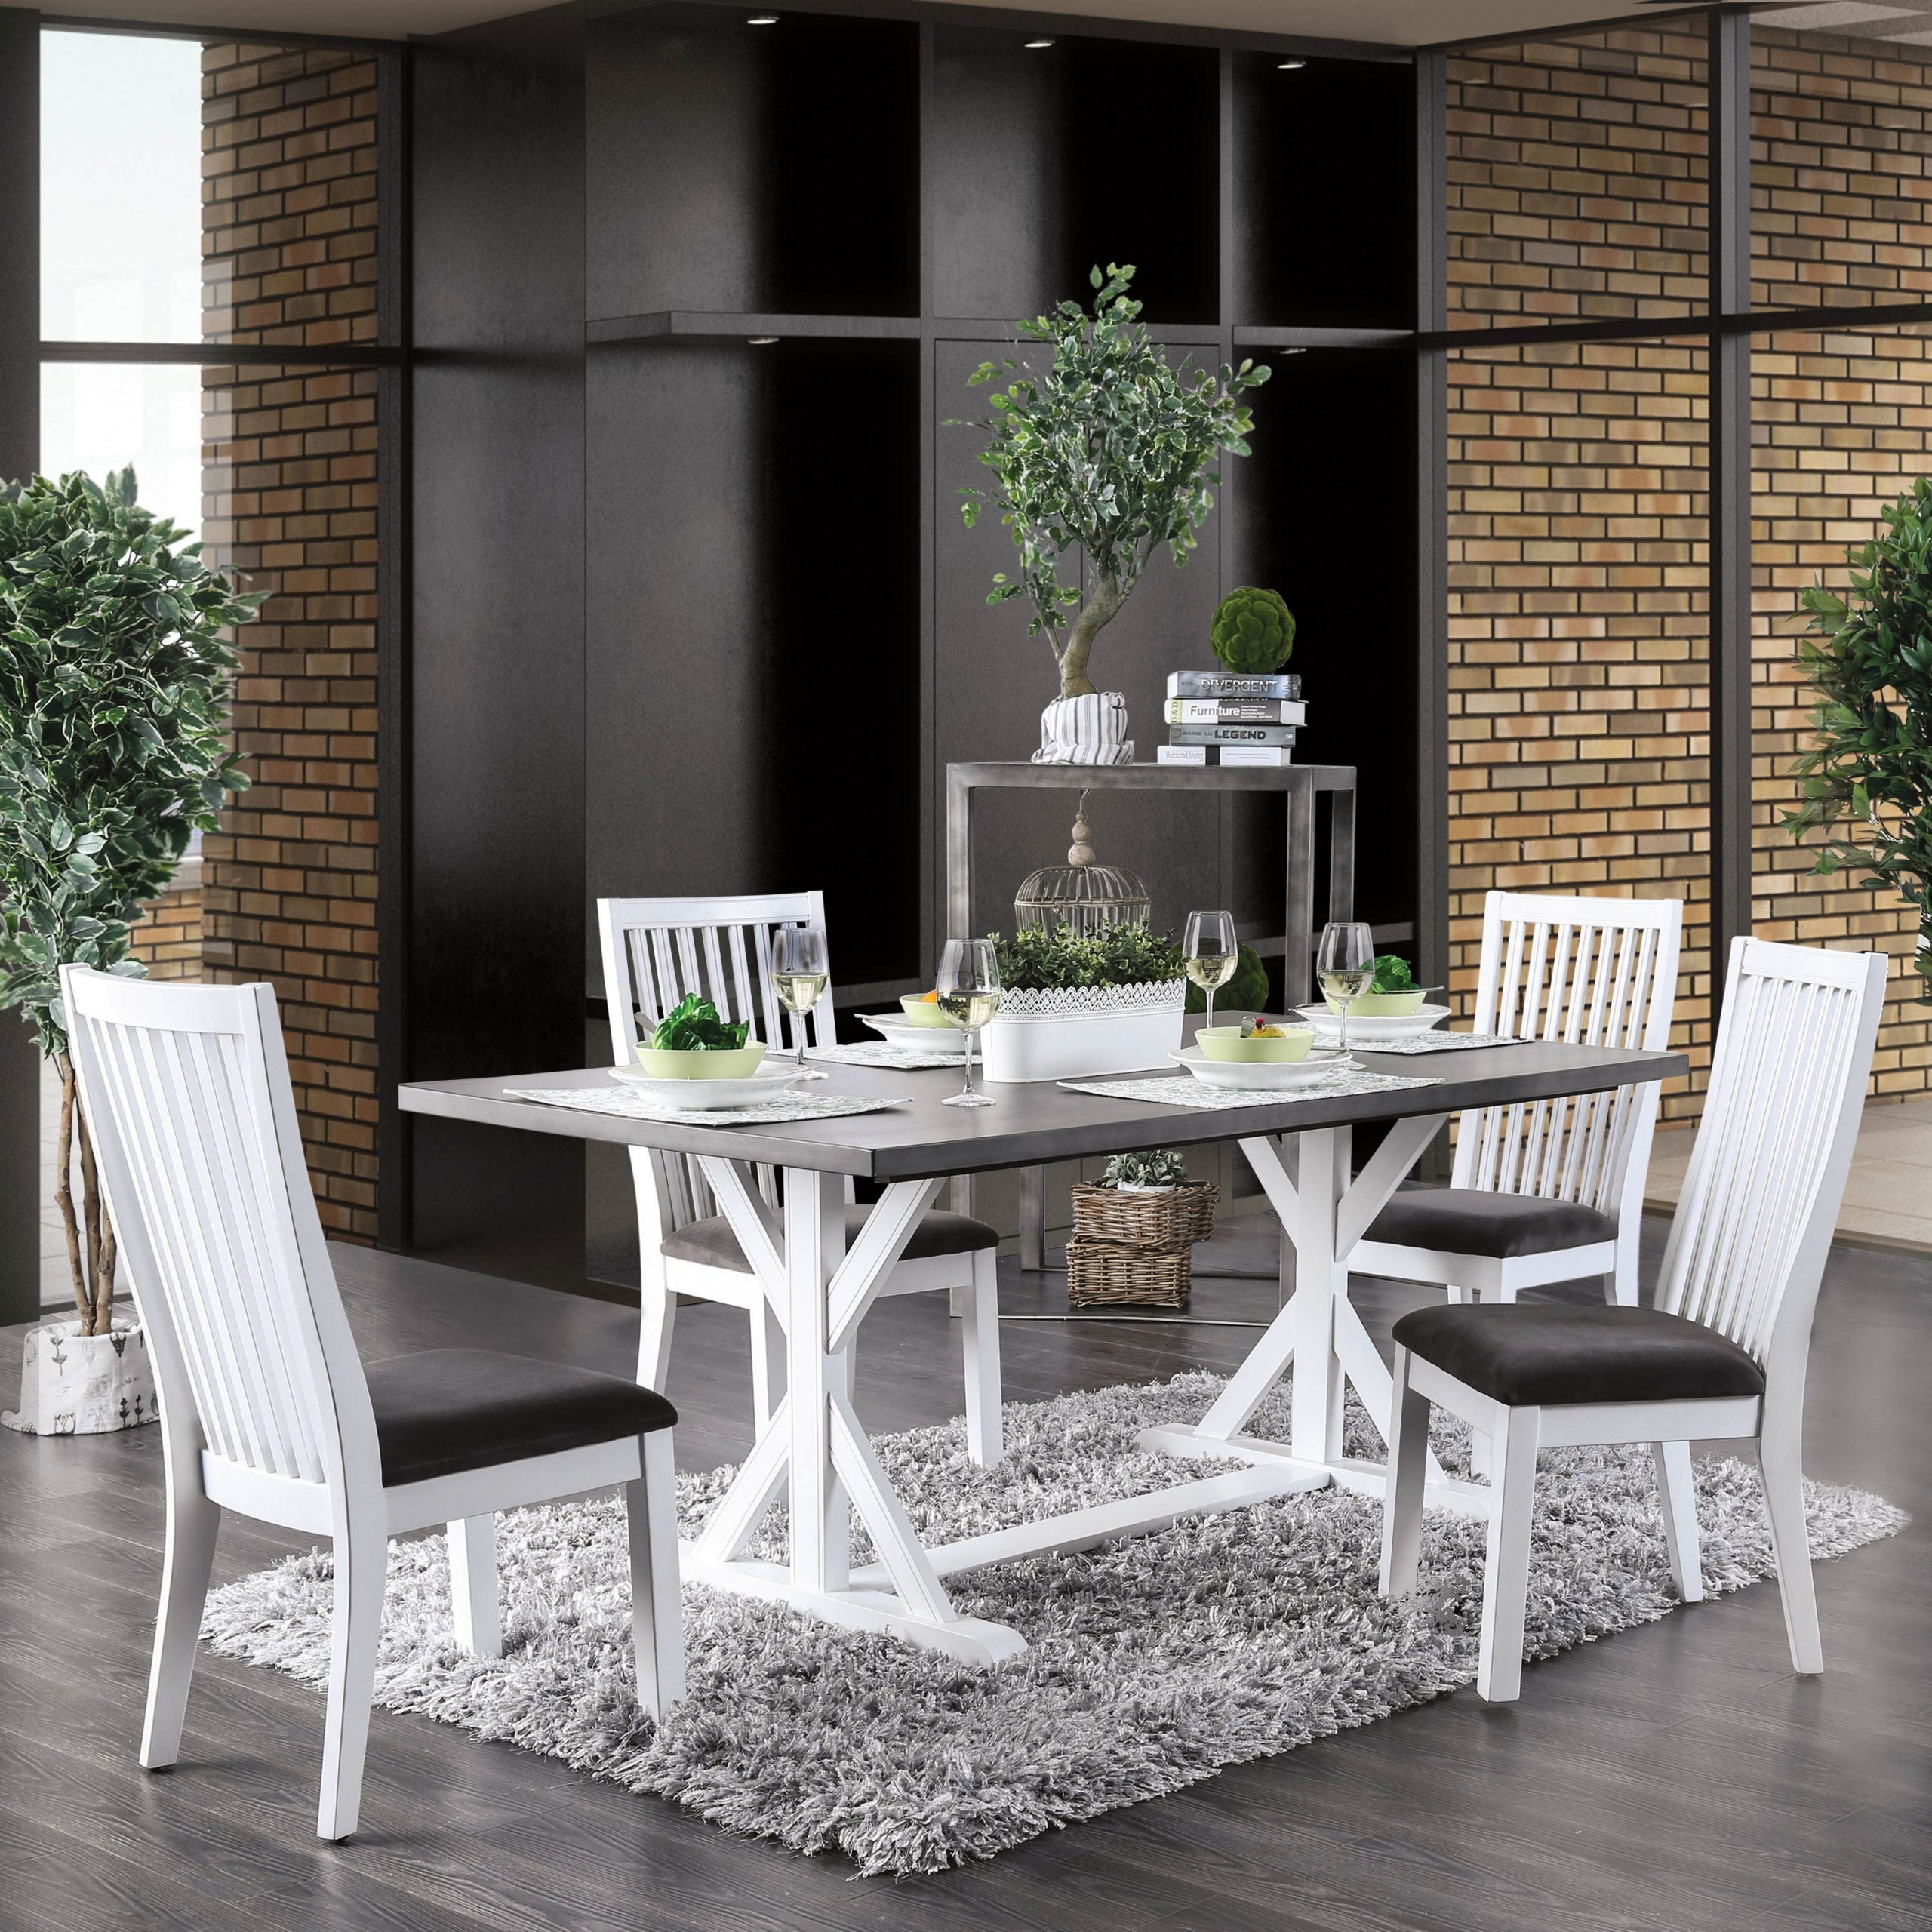 Lytton Farmhouse White 5 Piece Rectangle Dining Setfoa Intended For Most Current Kipling Rectangular Dining Tables (Image 13 of 25)